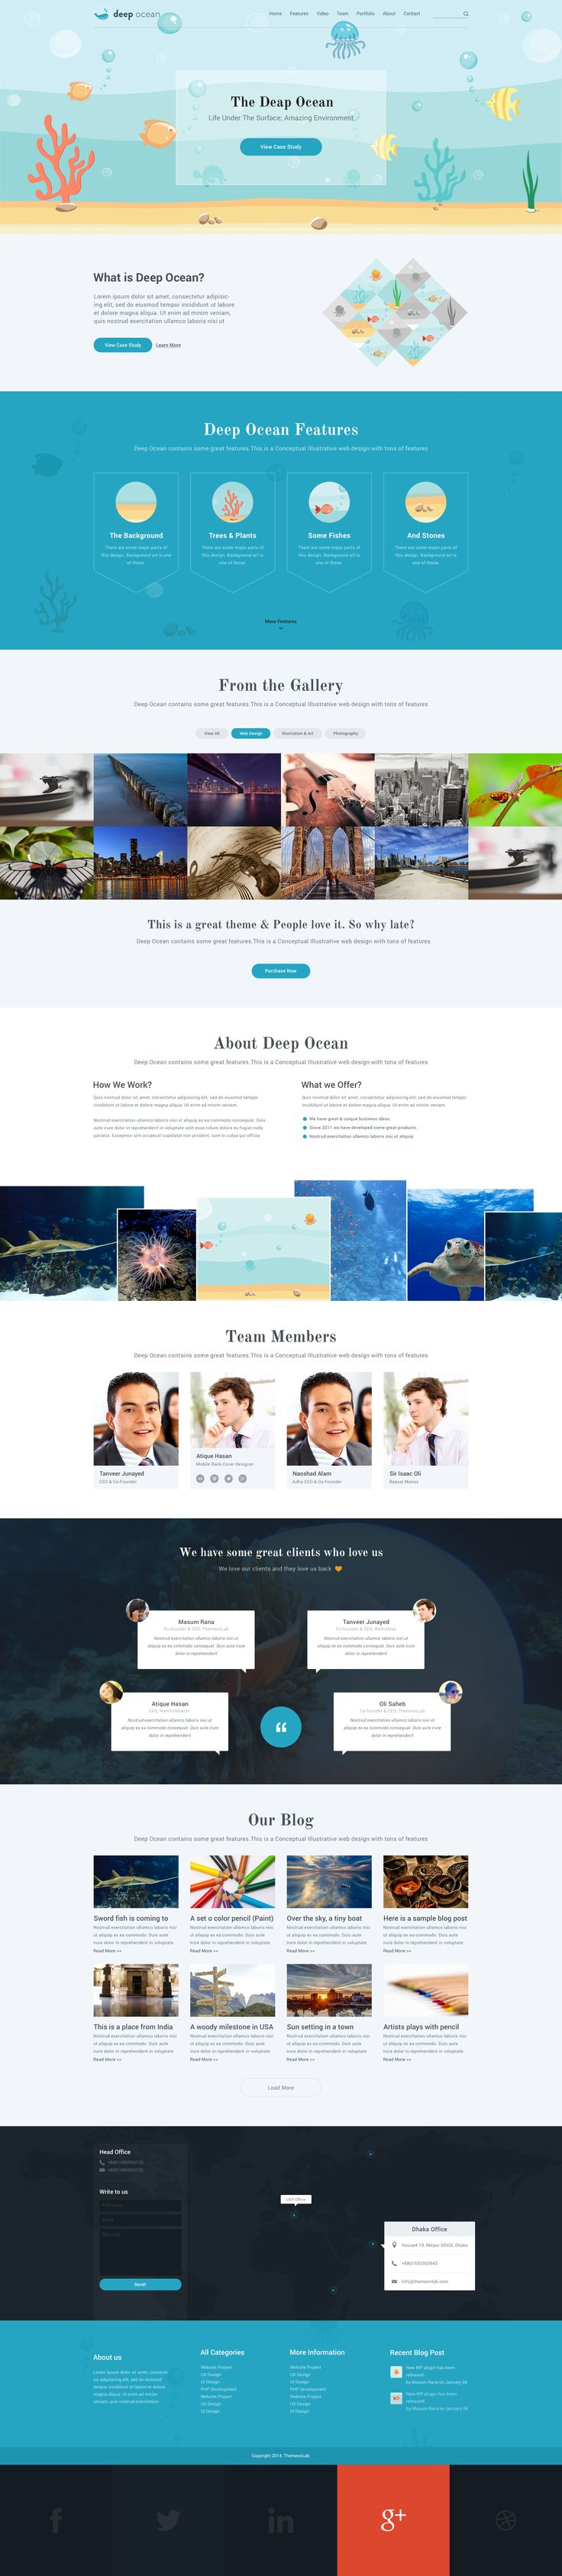 Deep Ocean Single Page PSD Template • Download ➝ https://themeforest.net/item/deep-ocean-single-page-psd-template/8058575?ref=pxcr